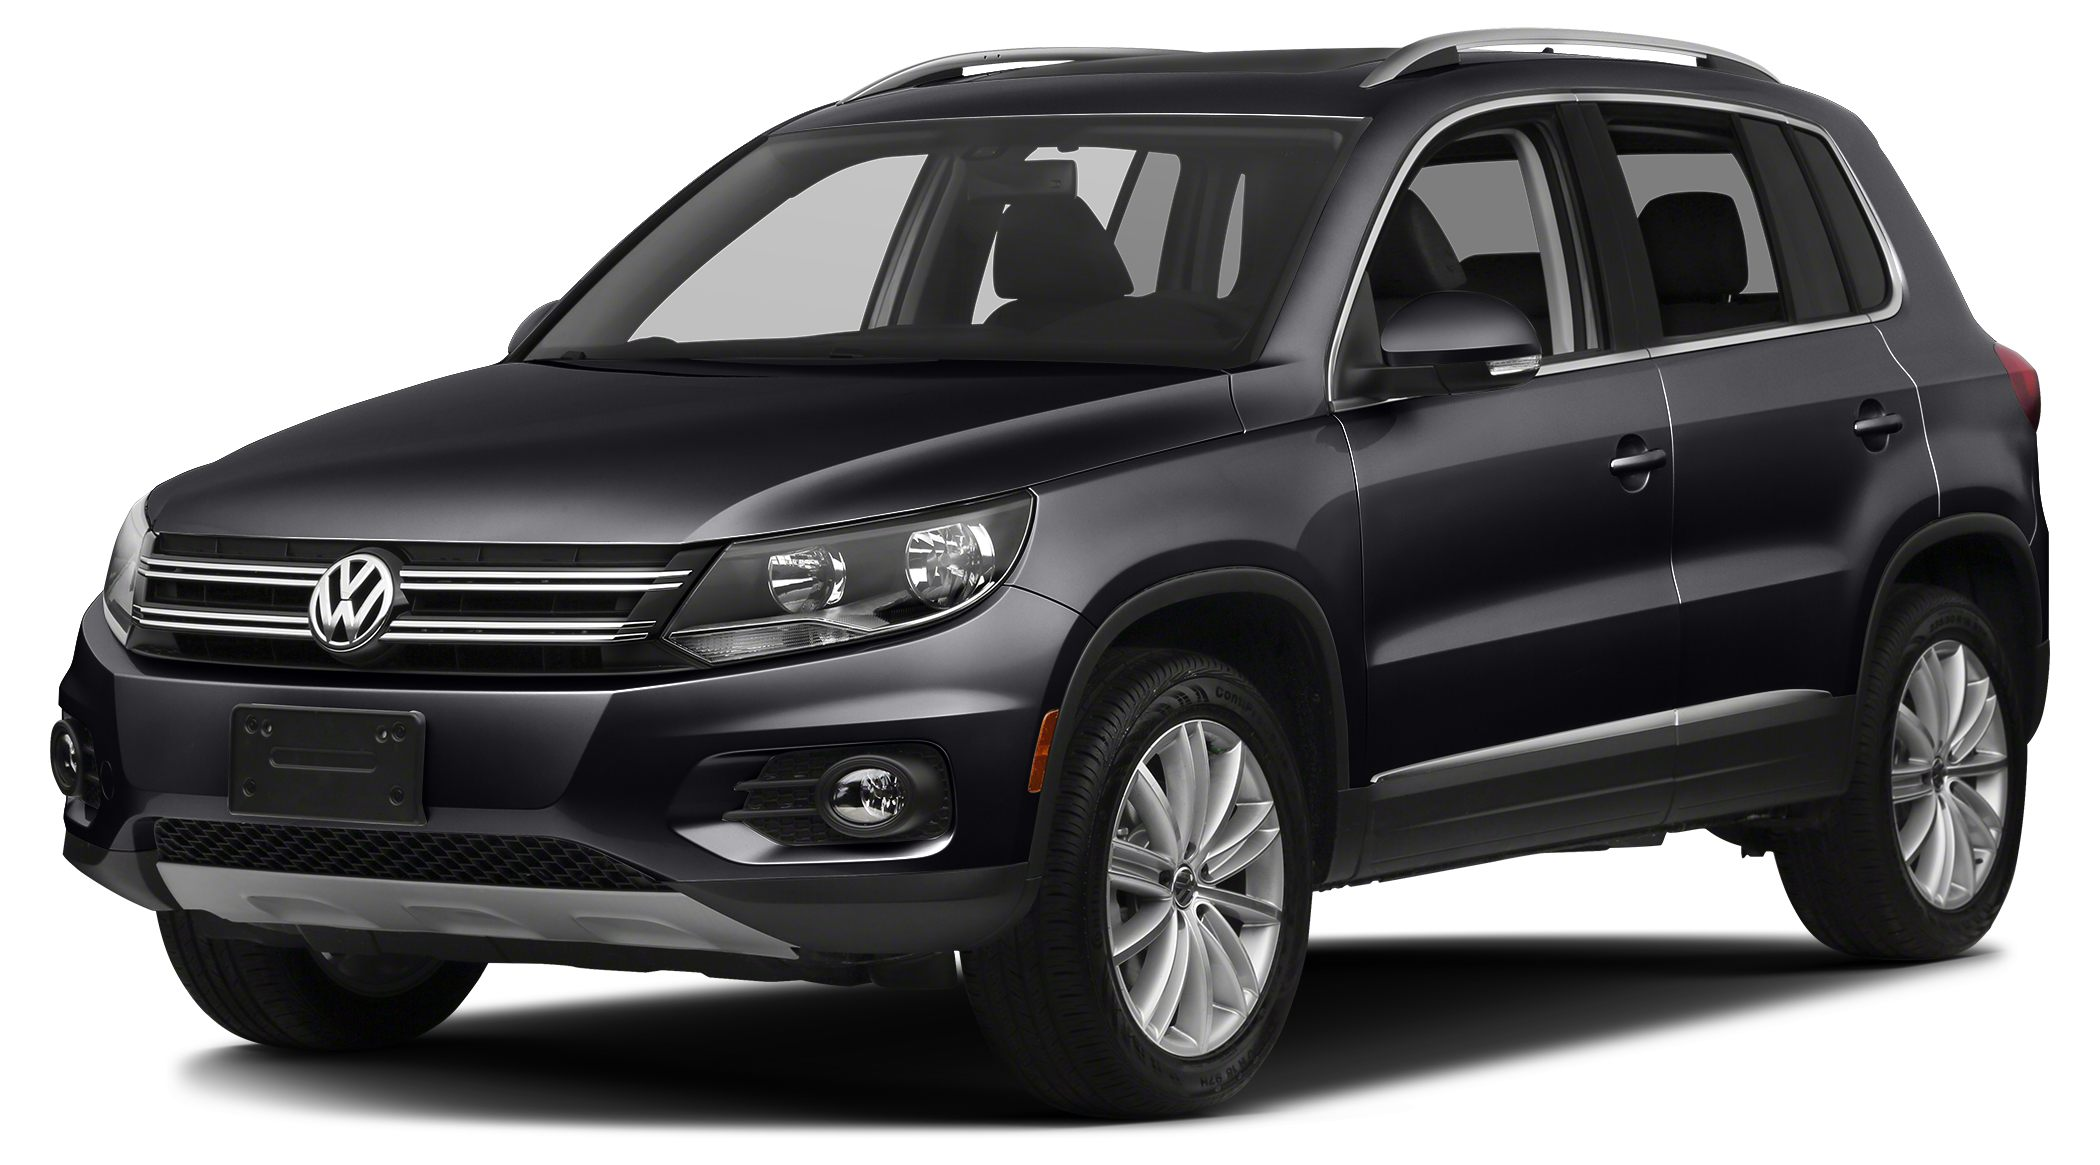 2017 volkswagen tiguan 2 0l r line prices specifications in uae. Black Bedroom Furniture Sets. Home Design Ideas